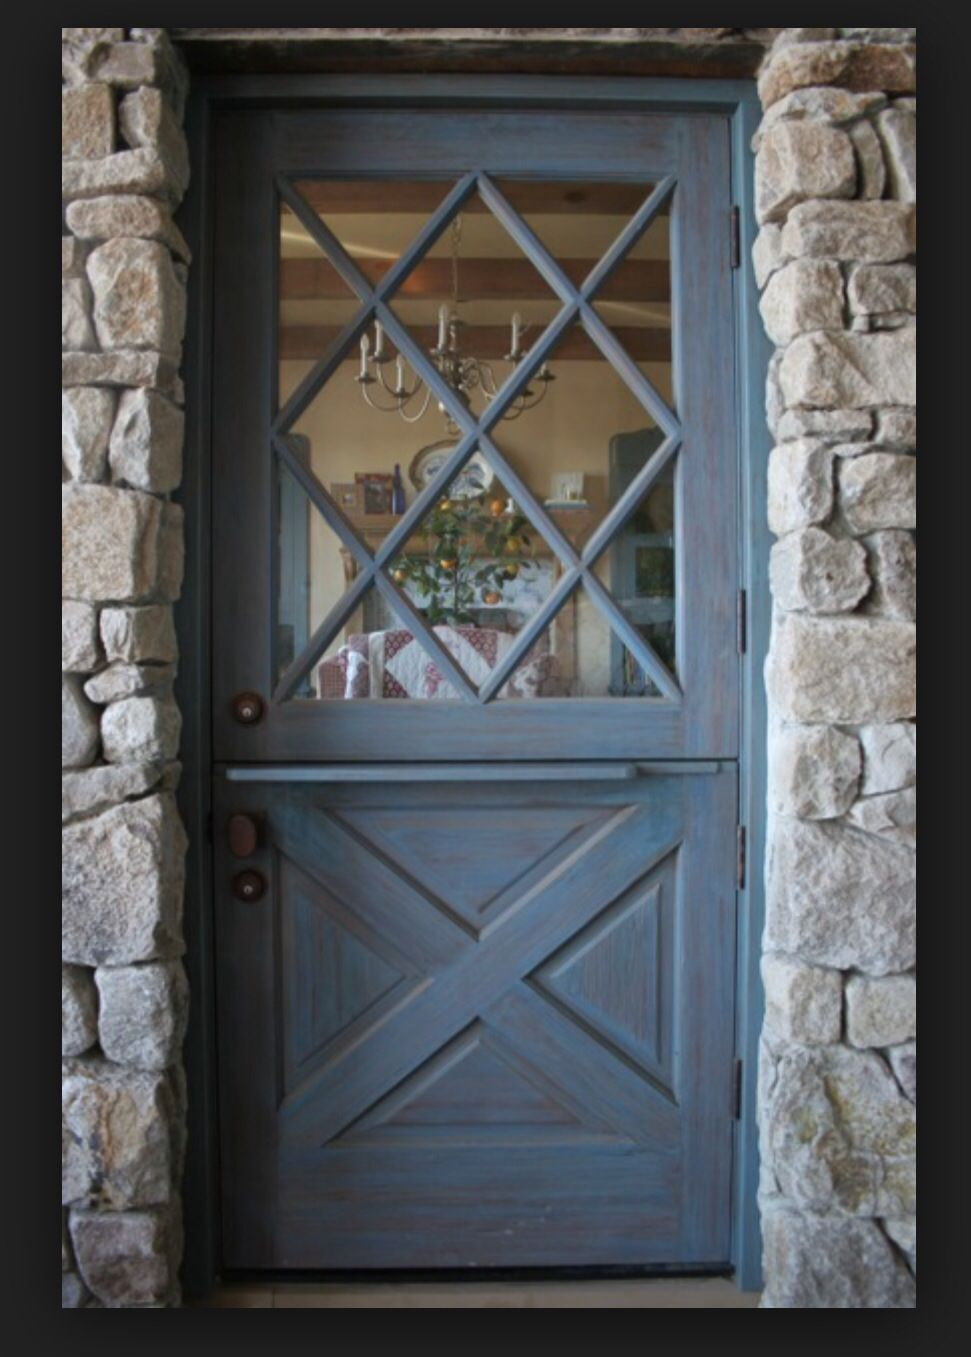 Diamond Pattern Glass Dutch Door My Favorite Door And Window Design Glass Doors Interior Dutch Door